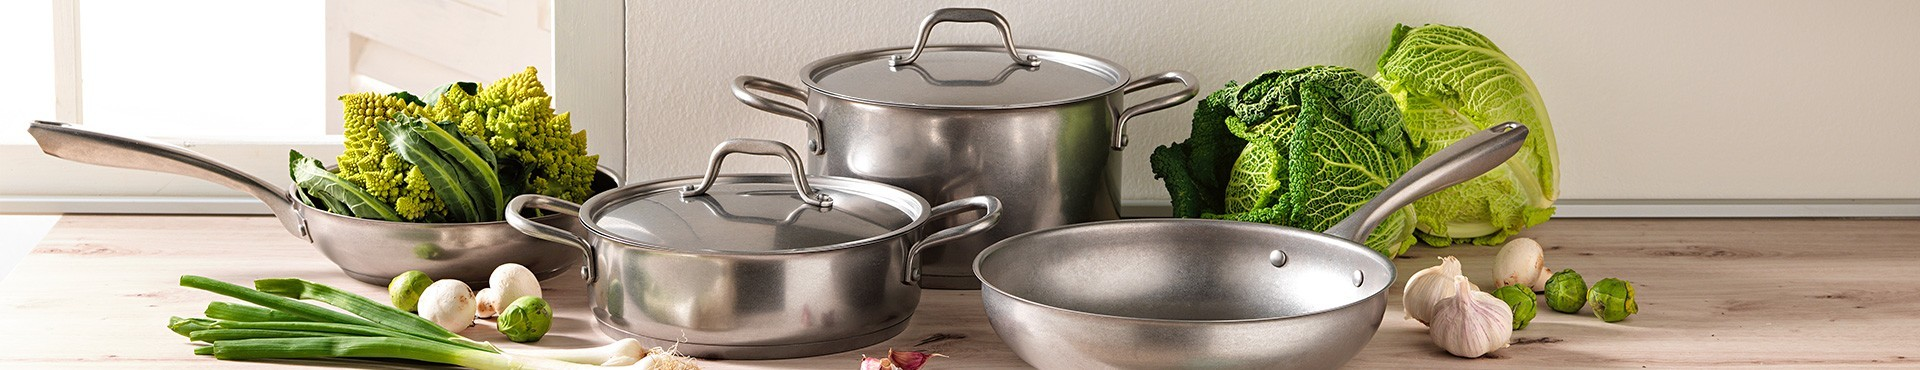 Pans and colander